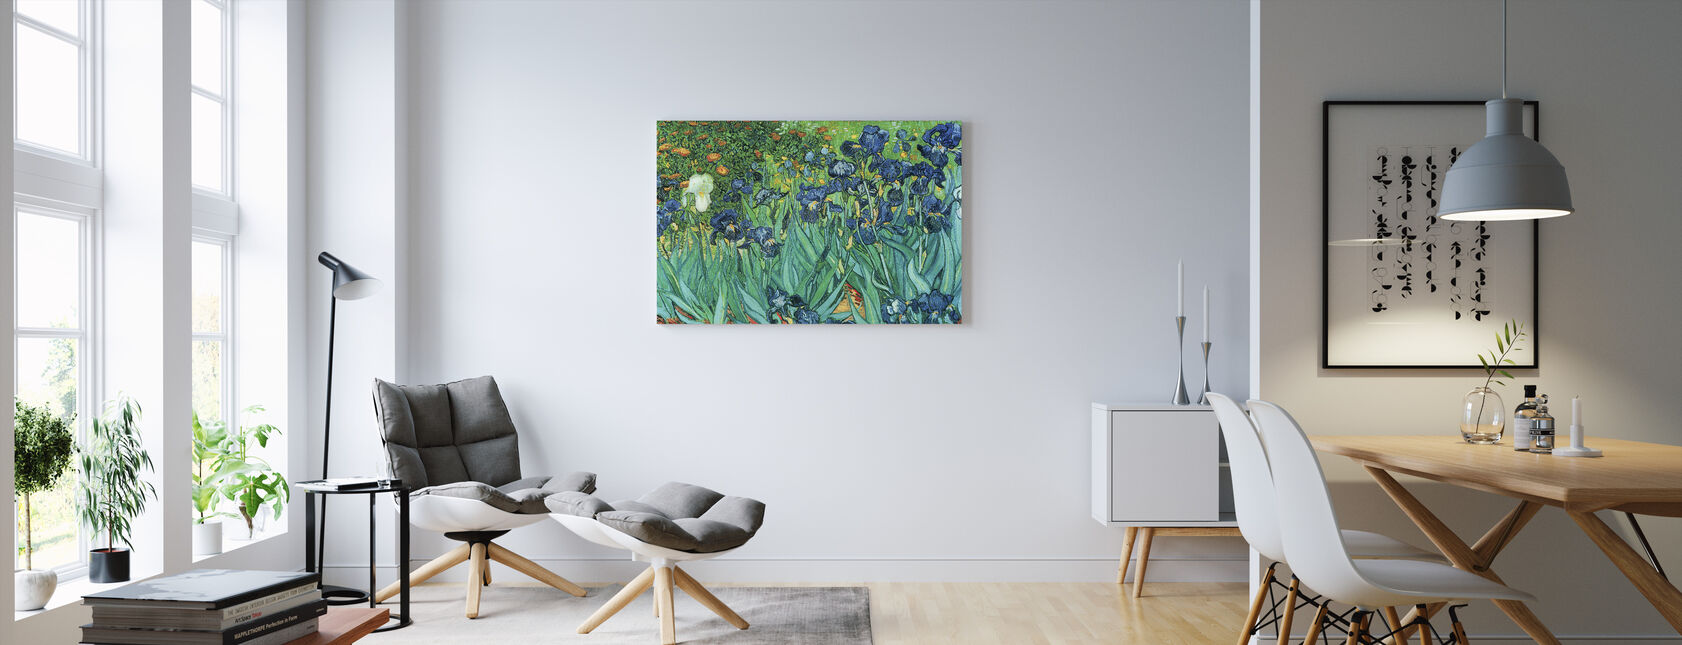 Irises, Vincent van Gogh - Canvas print - Living Room